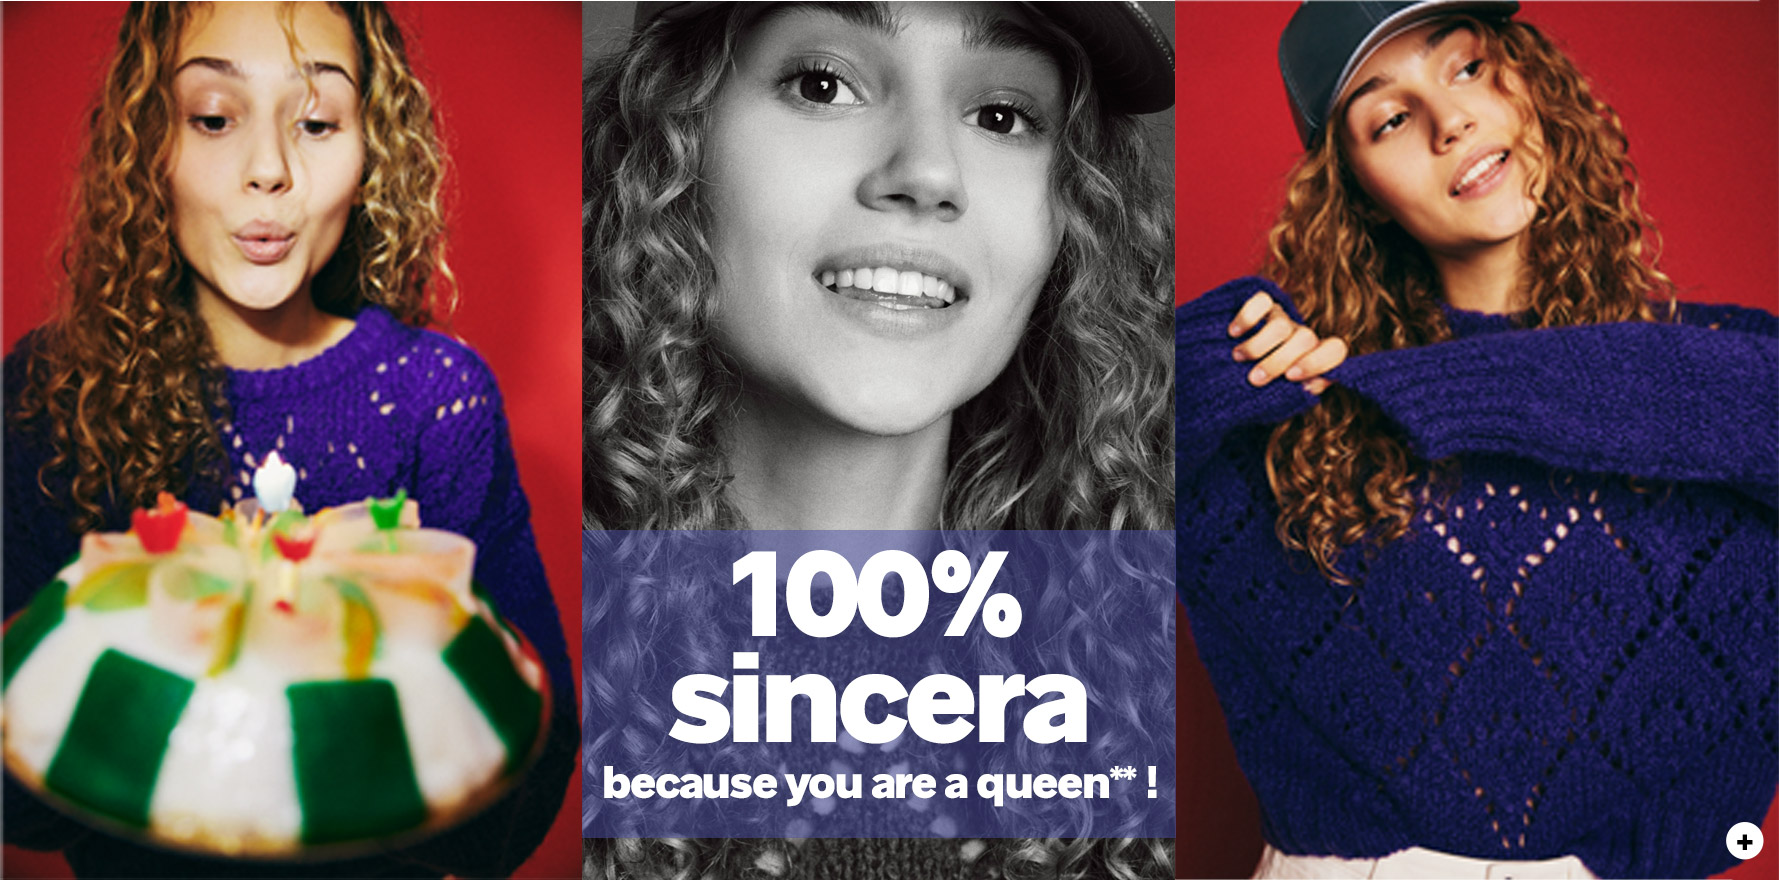 100% sincera, because you are a queen !**